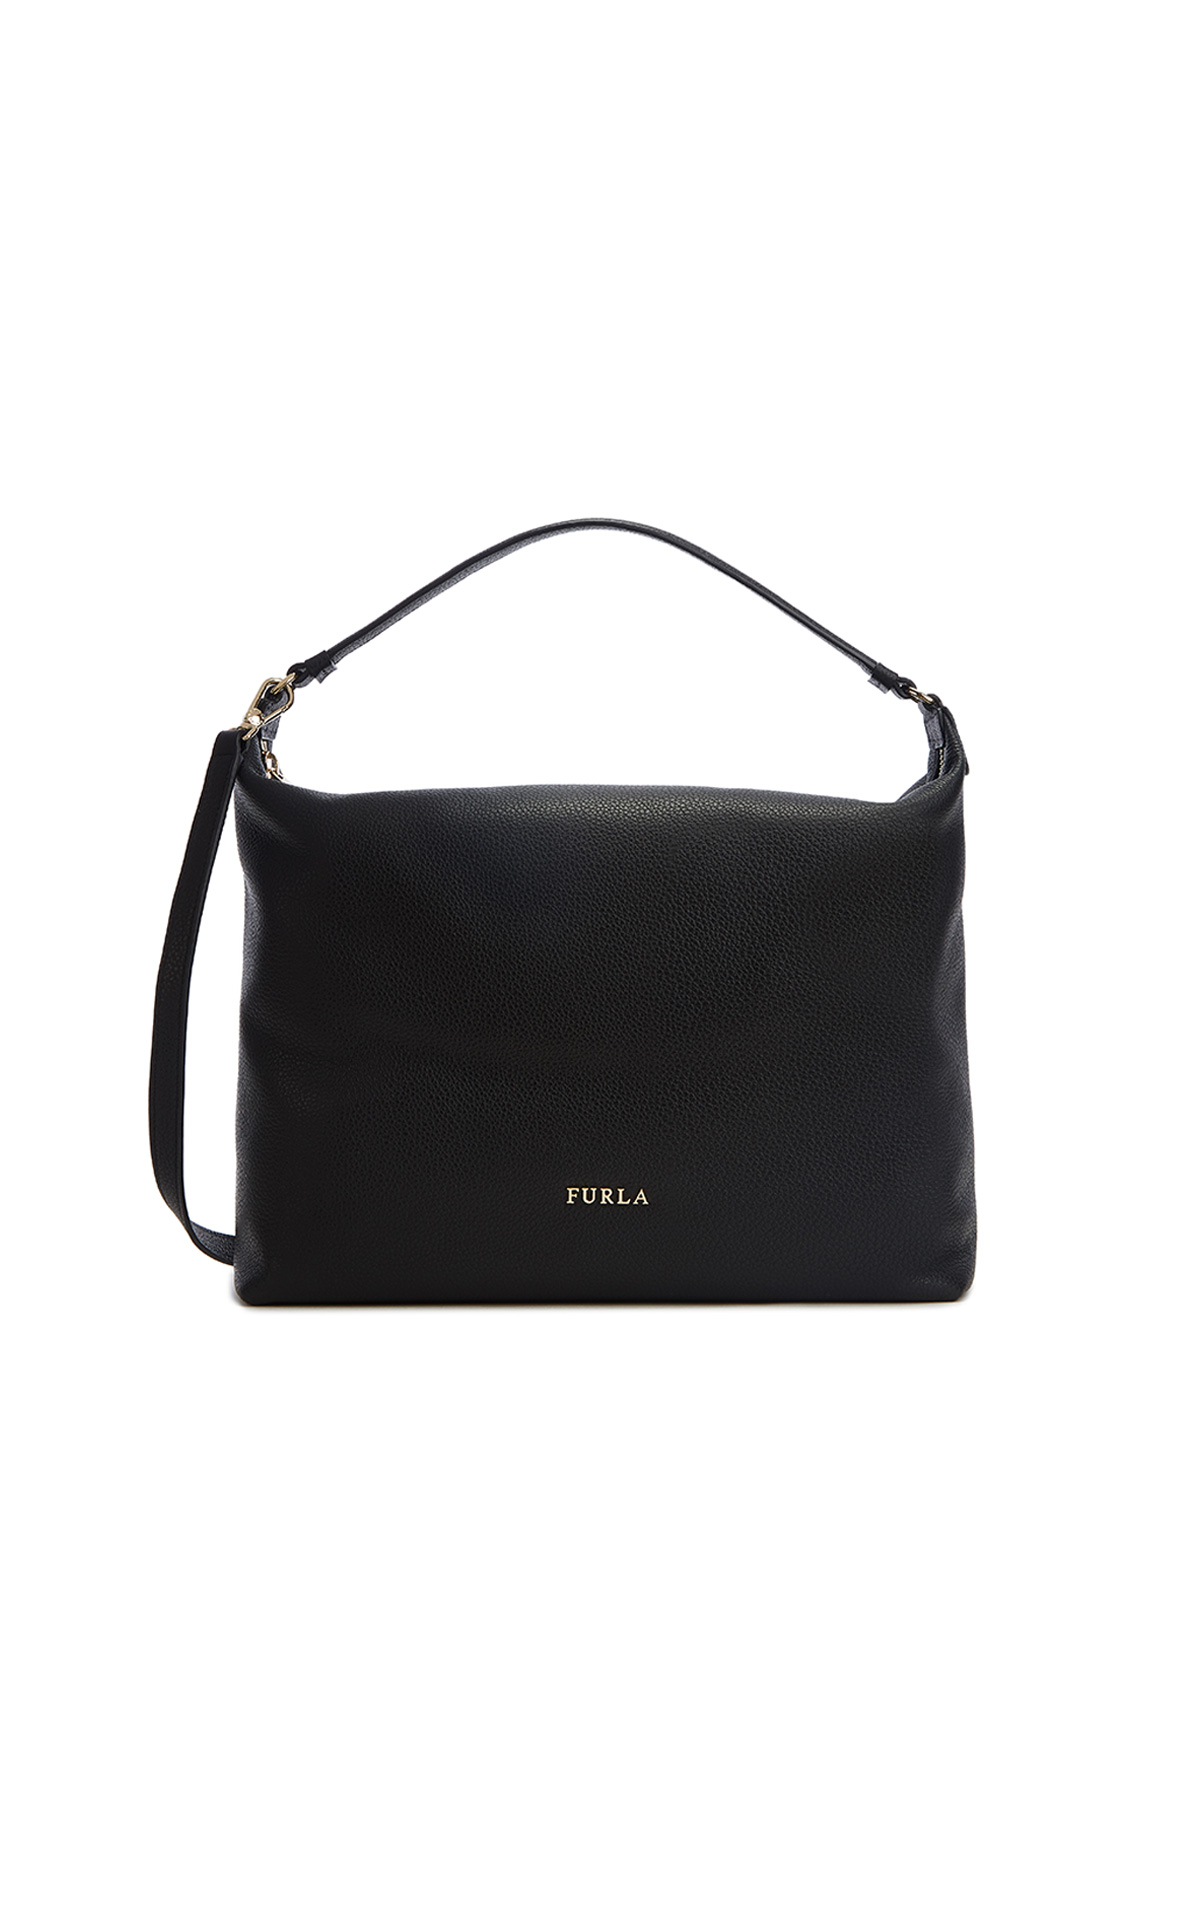 Furla Sophie Medium Hobo Black Bag at The Bicester Village Shopping Collection